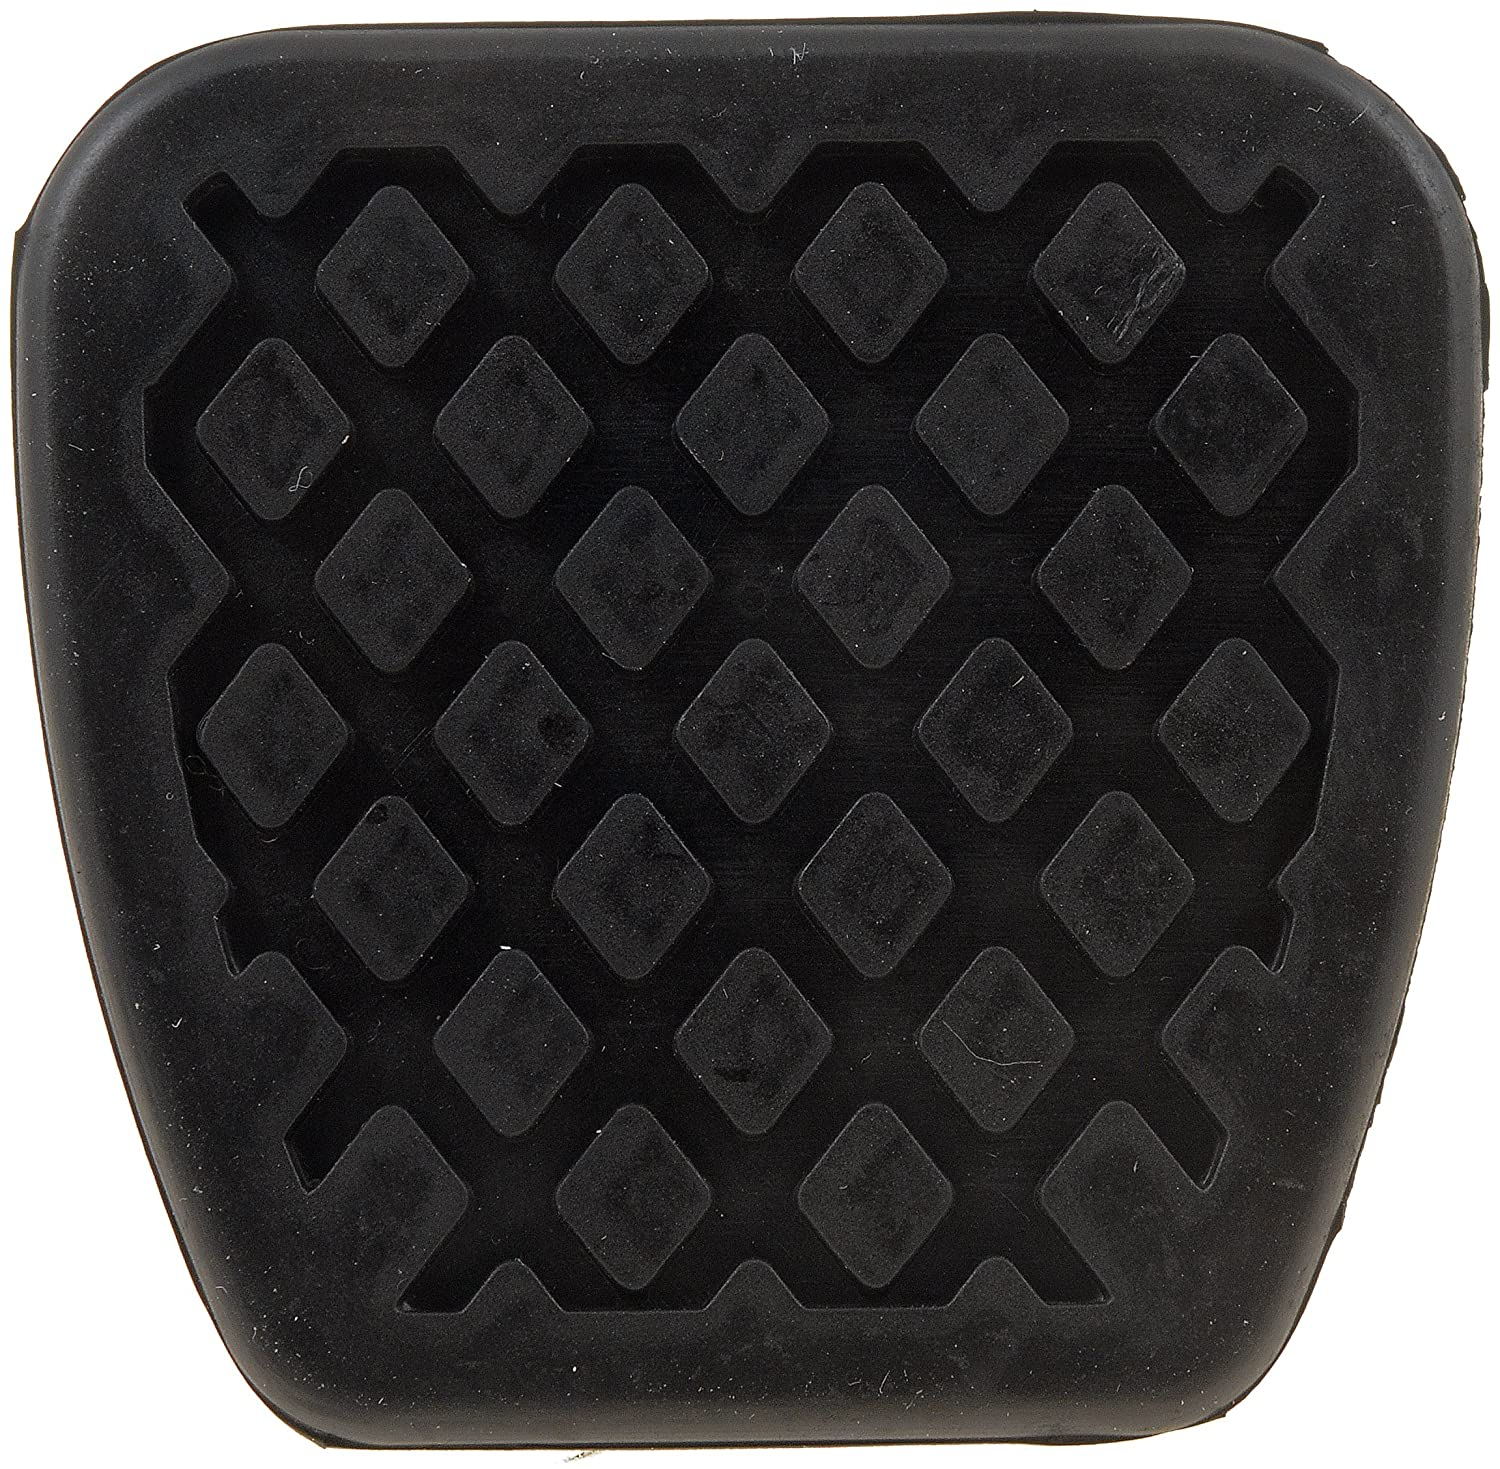 Clutch and Brake Pedal Pad: Automotive